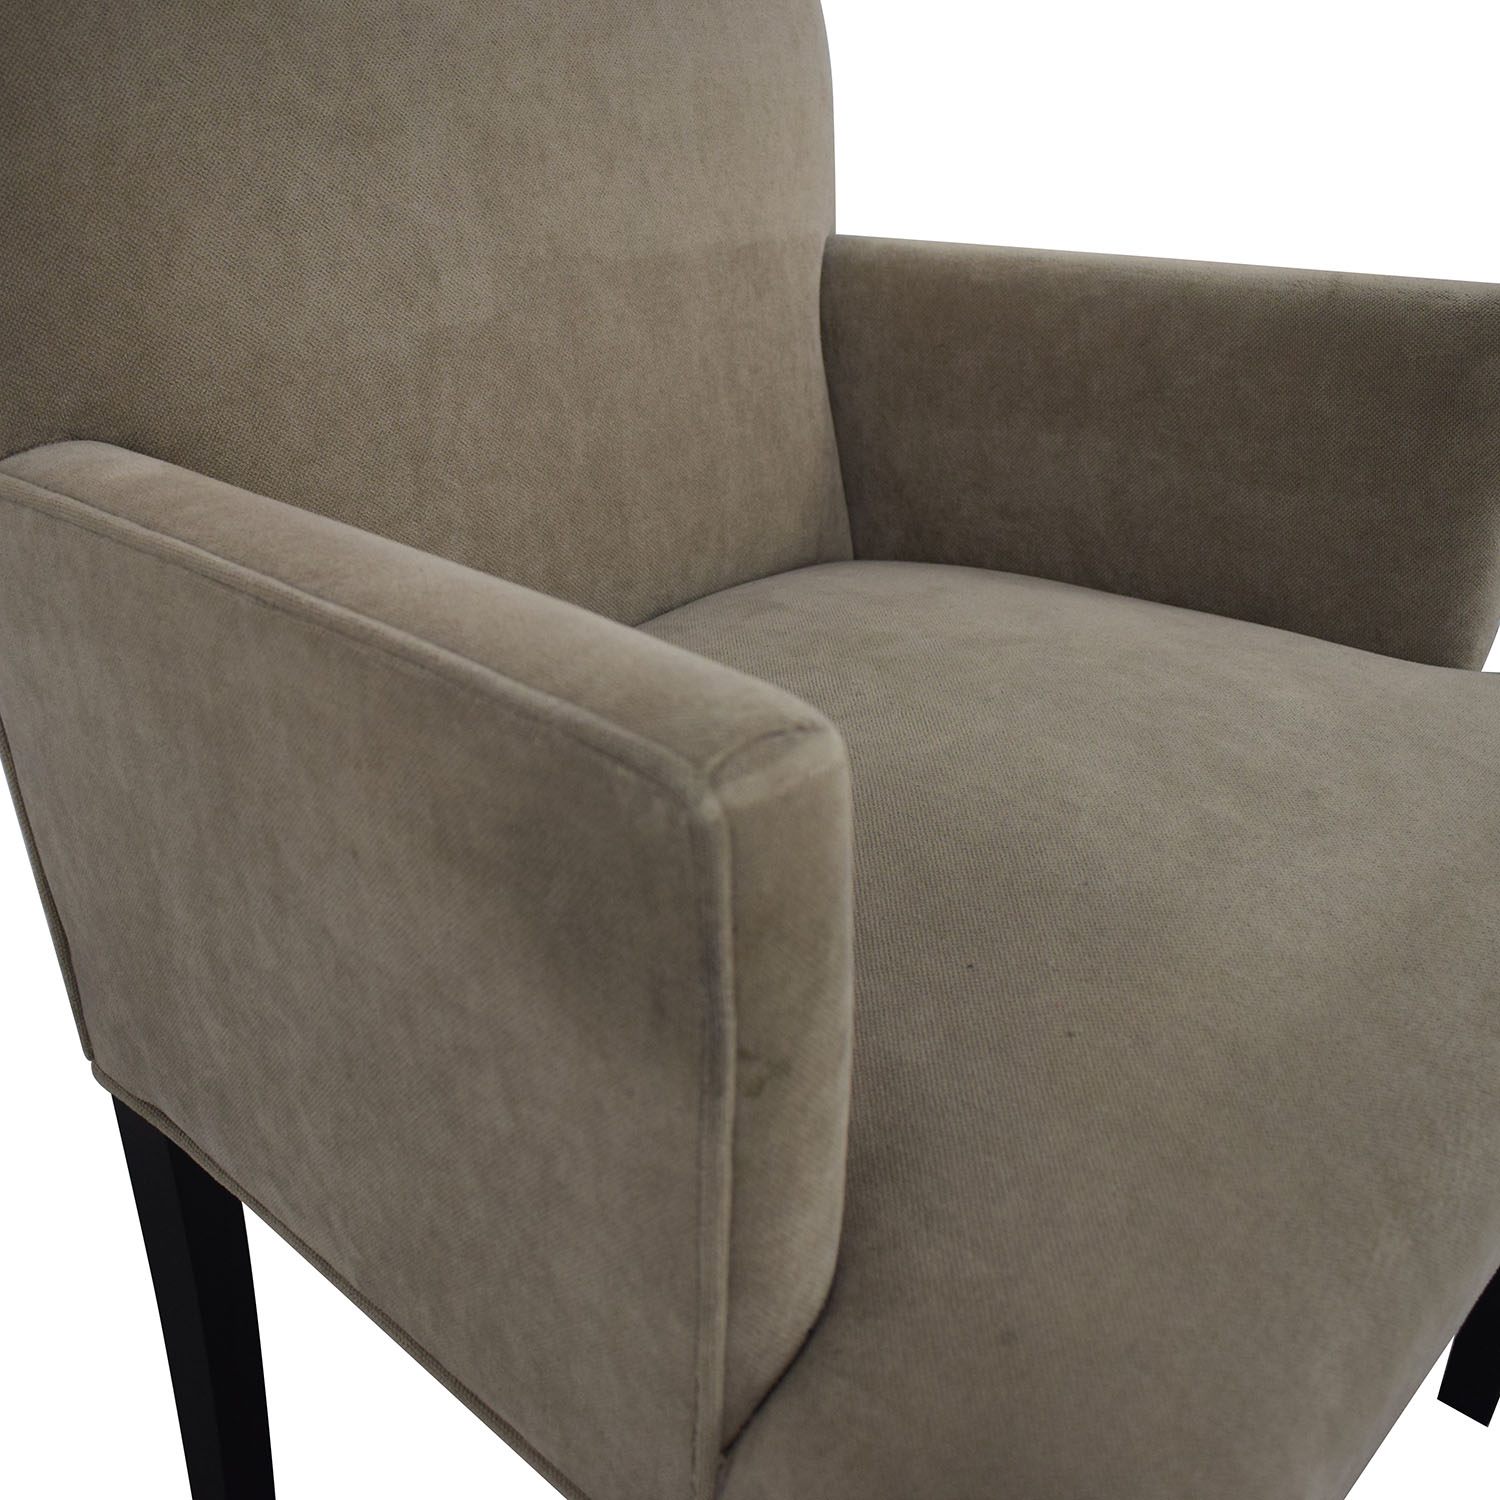 Crate & Barrel Crate & Barrel Tan Dining Chairs on sale